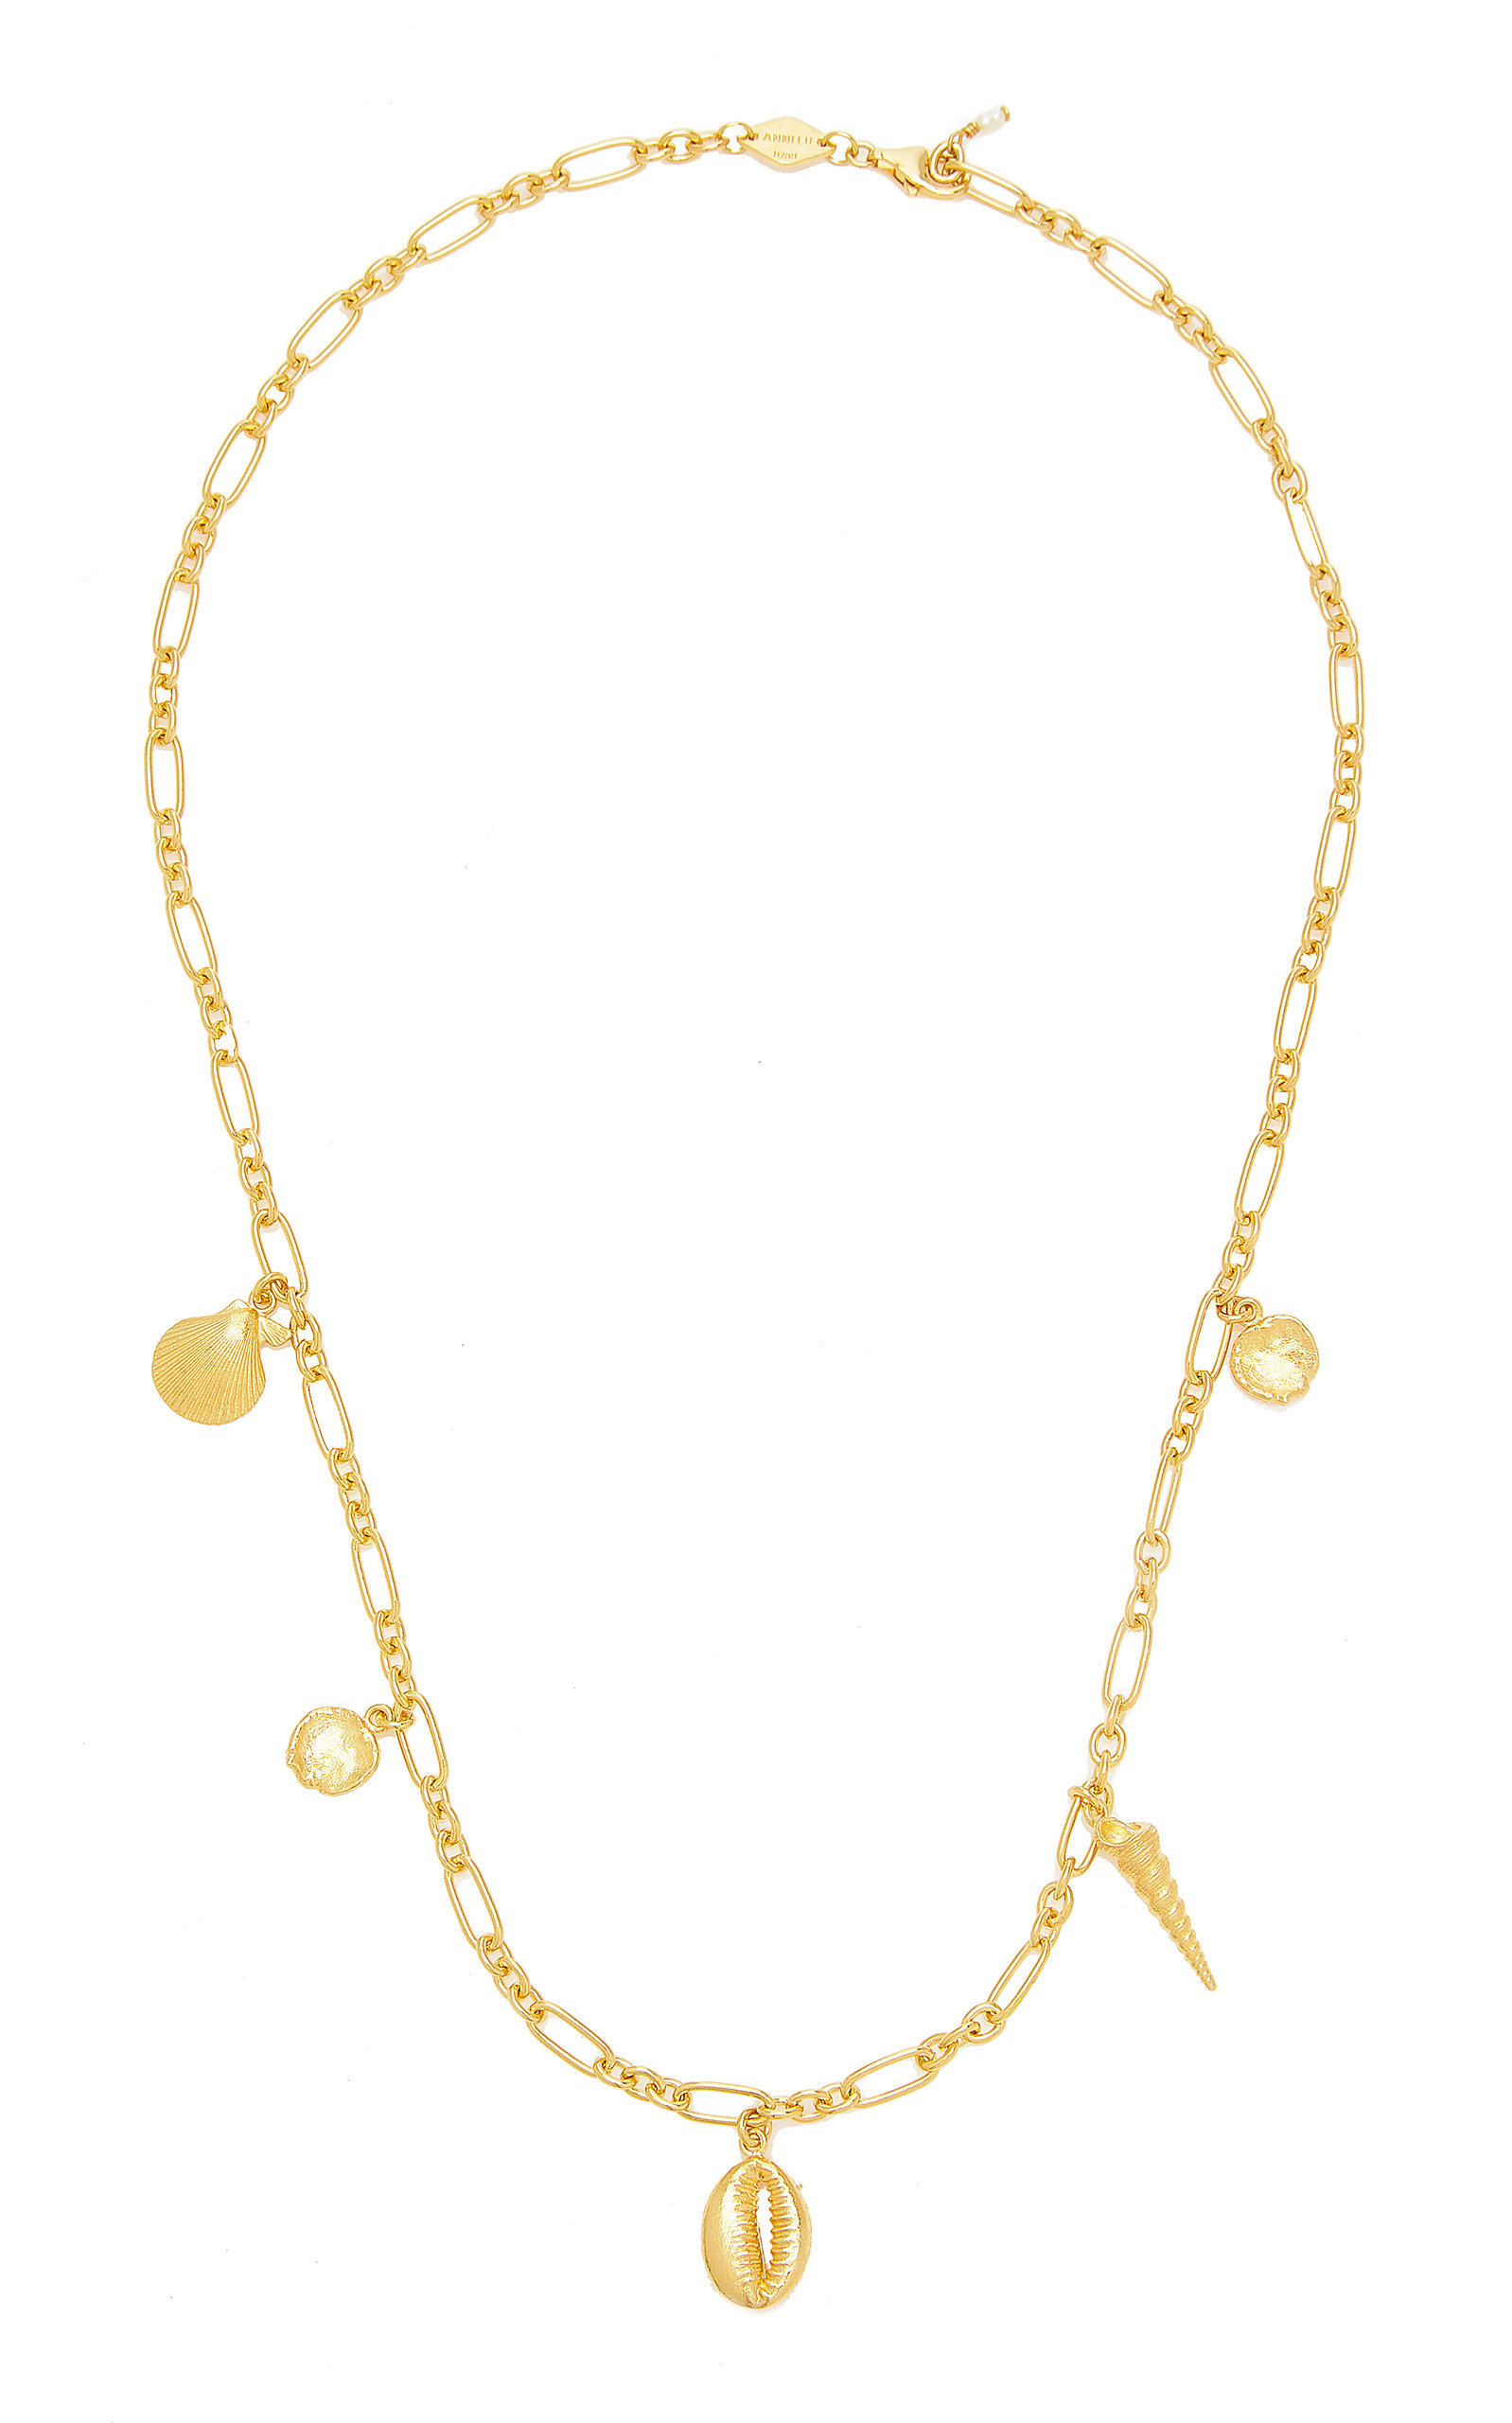 Women's Summer Treasure Gold-Plated Sterling Silver Necklace